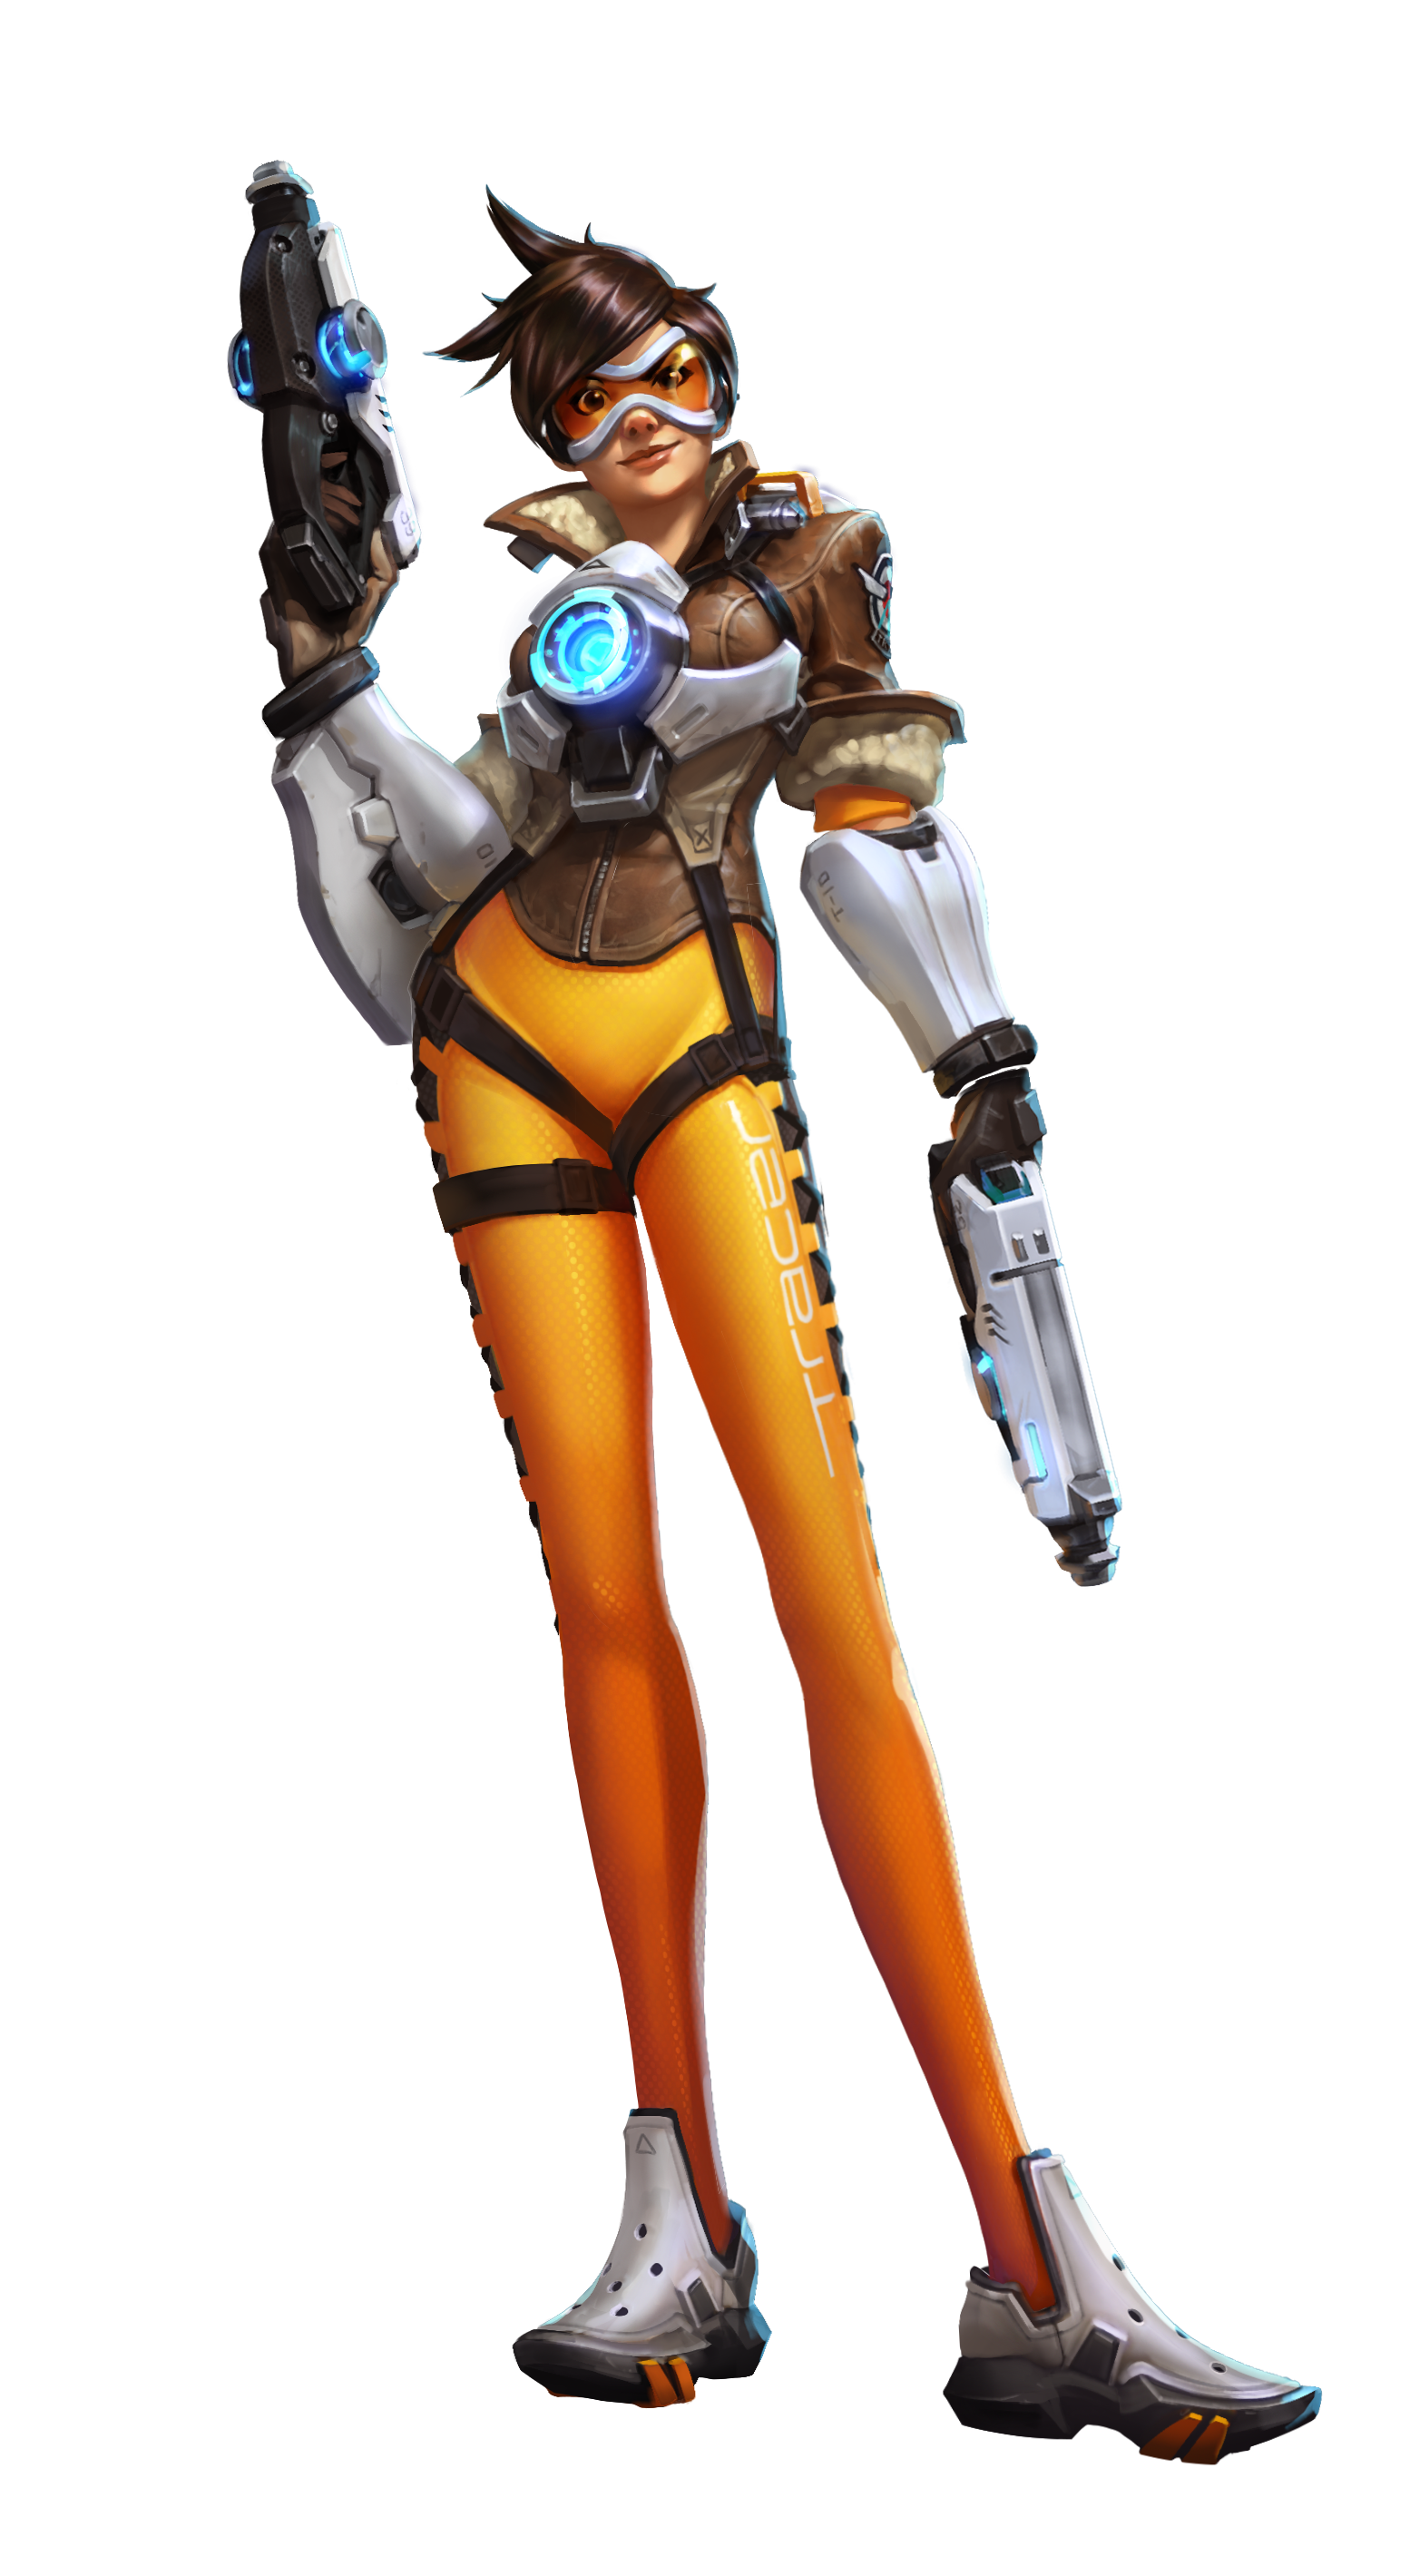 Moira transparent tracer. From heroes of the